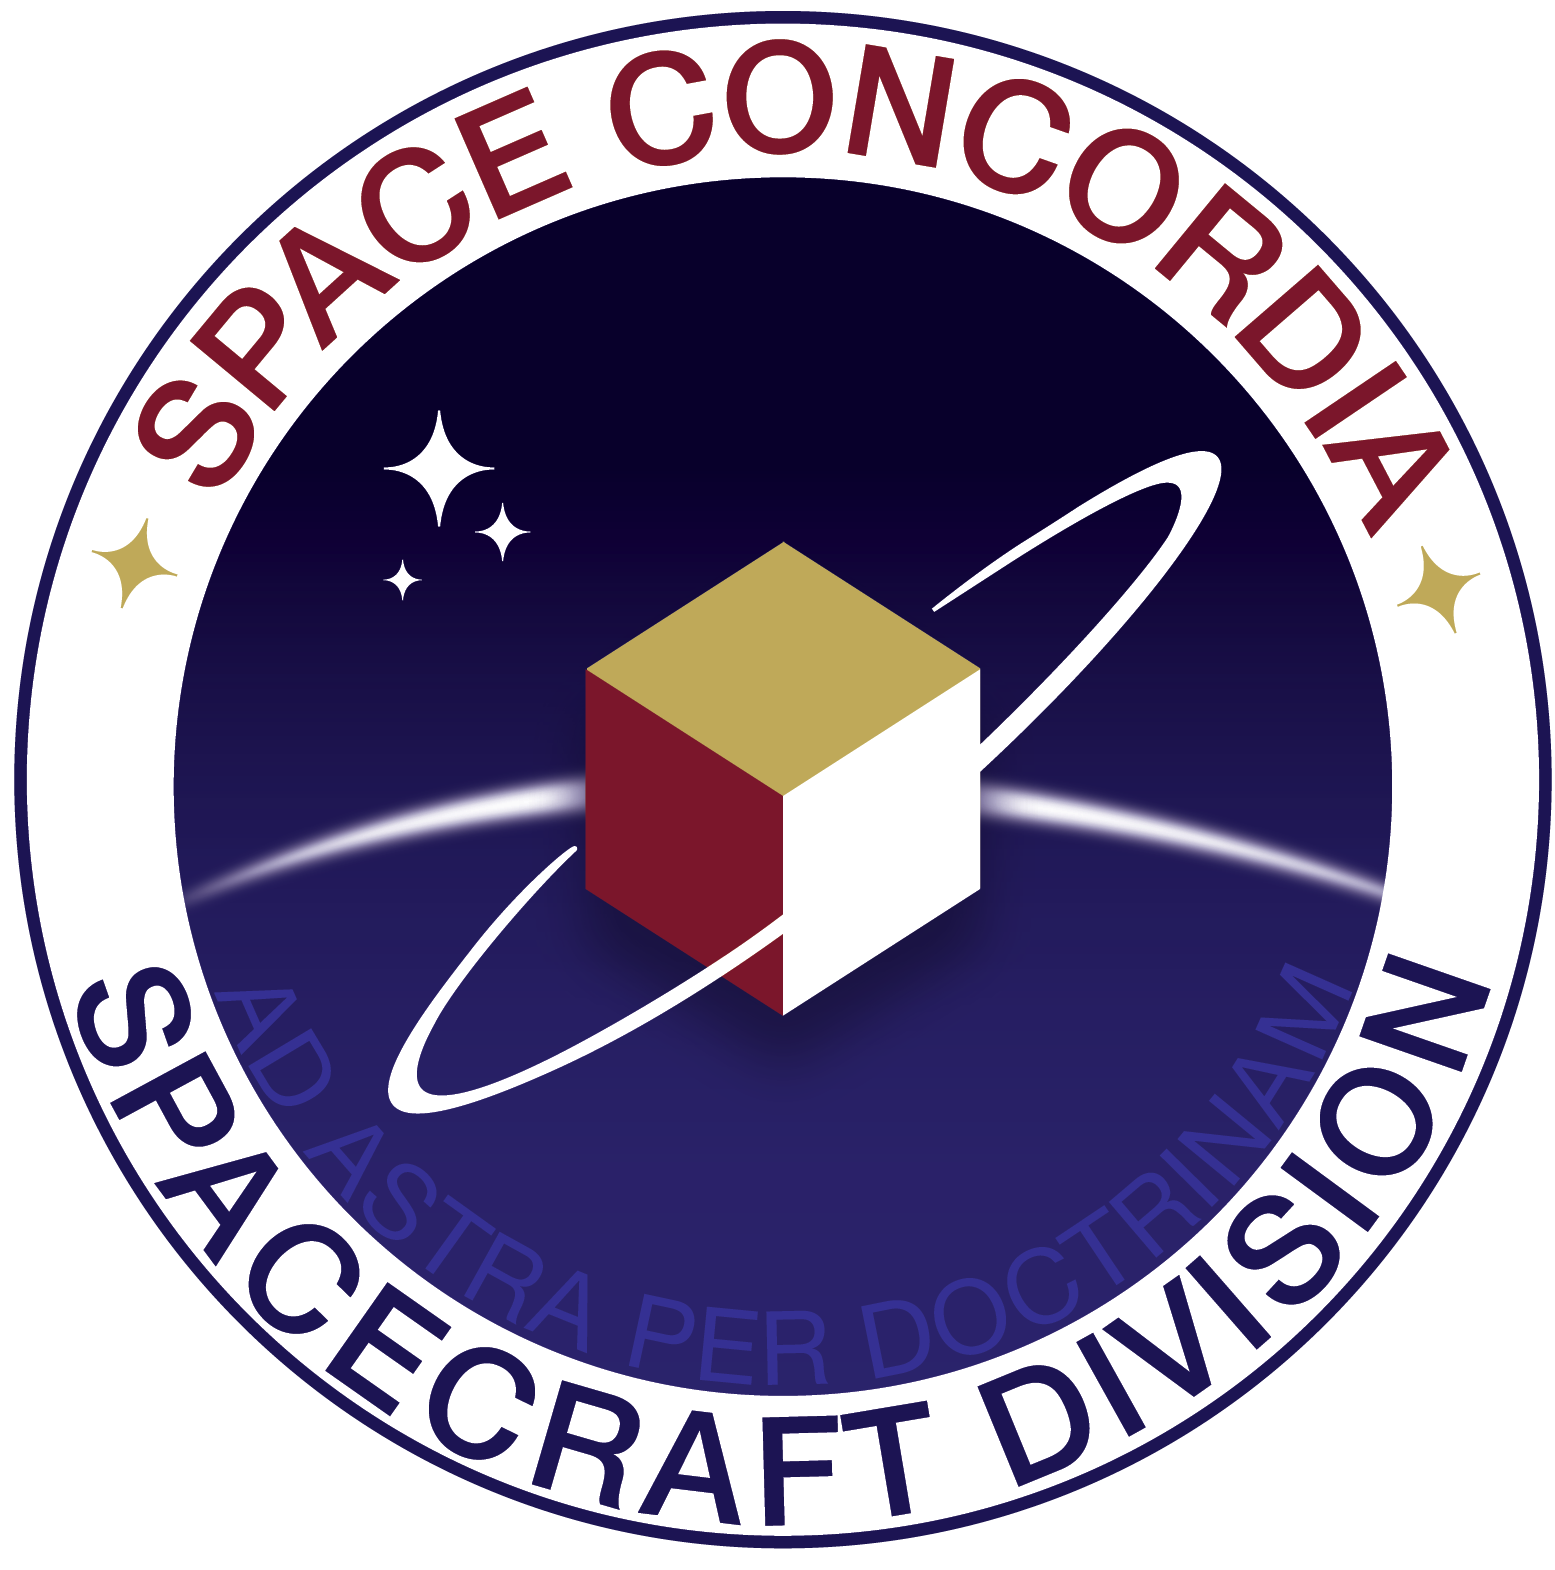 spacecraft division logo